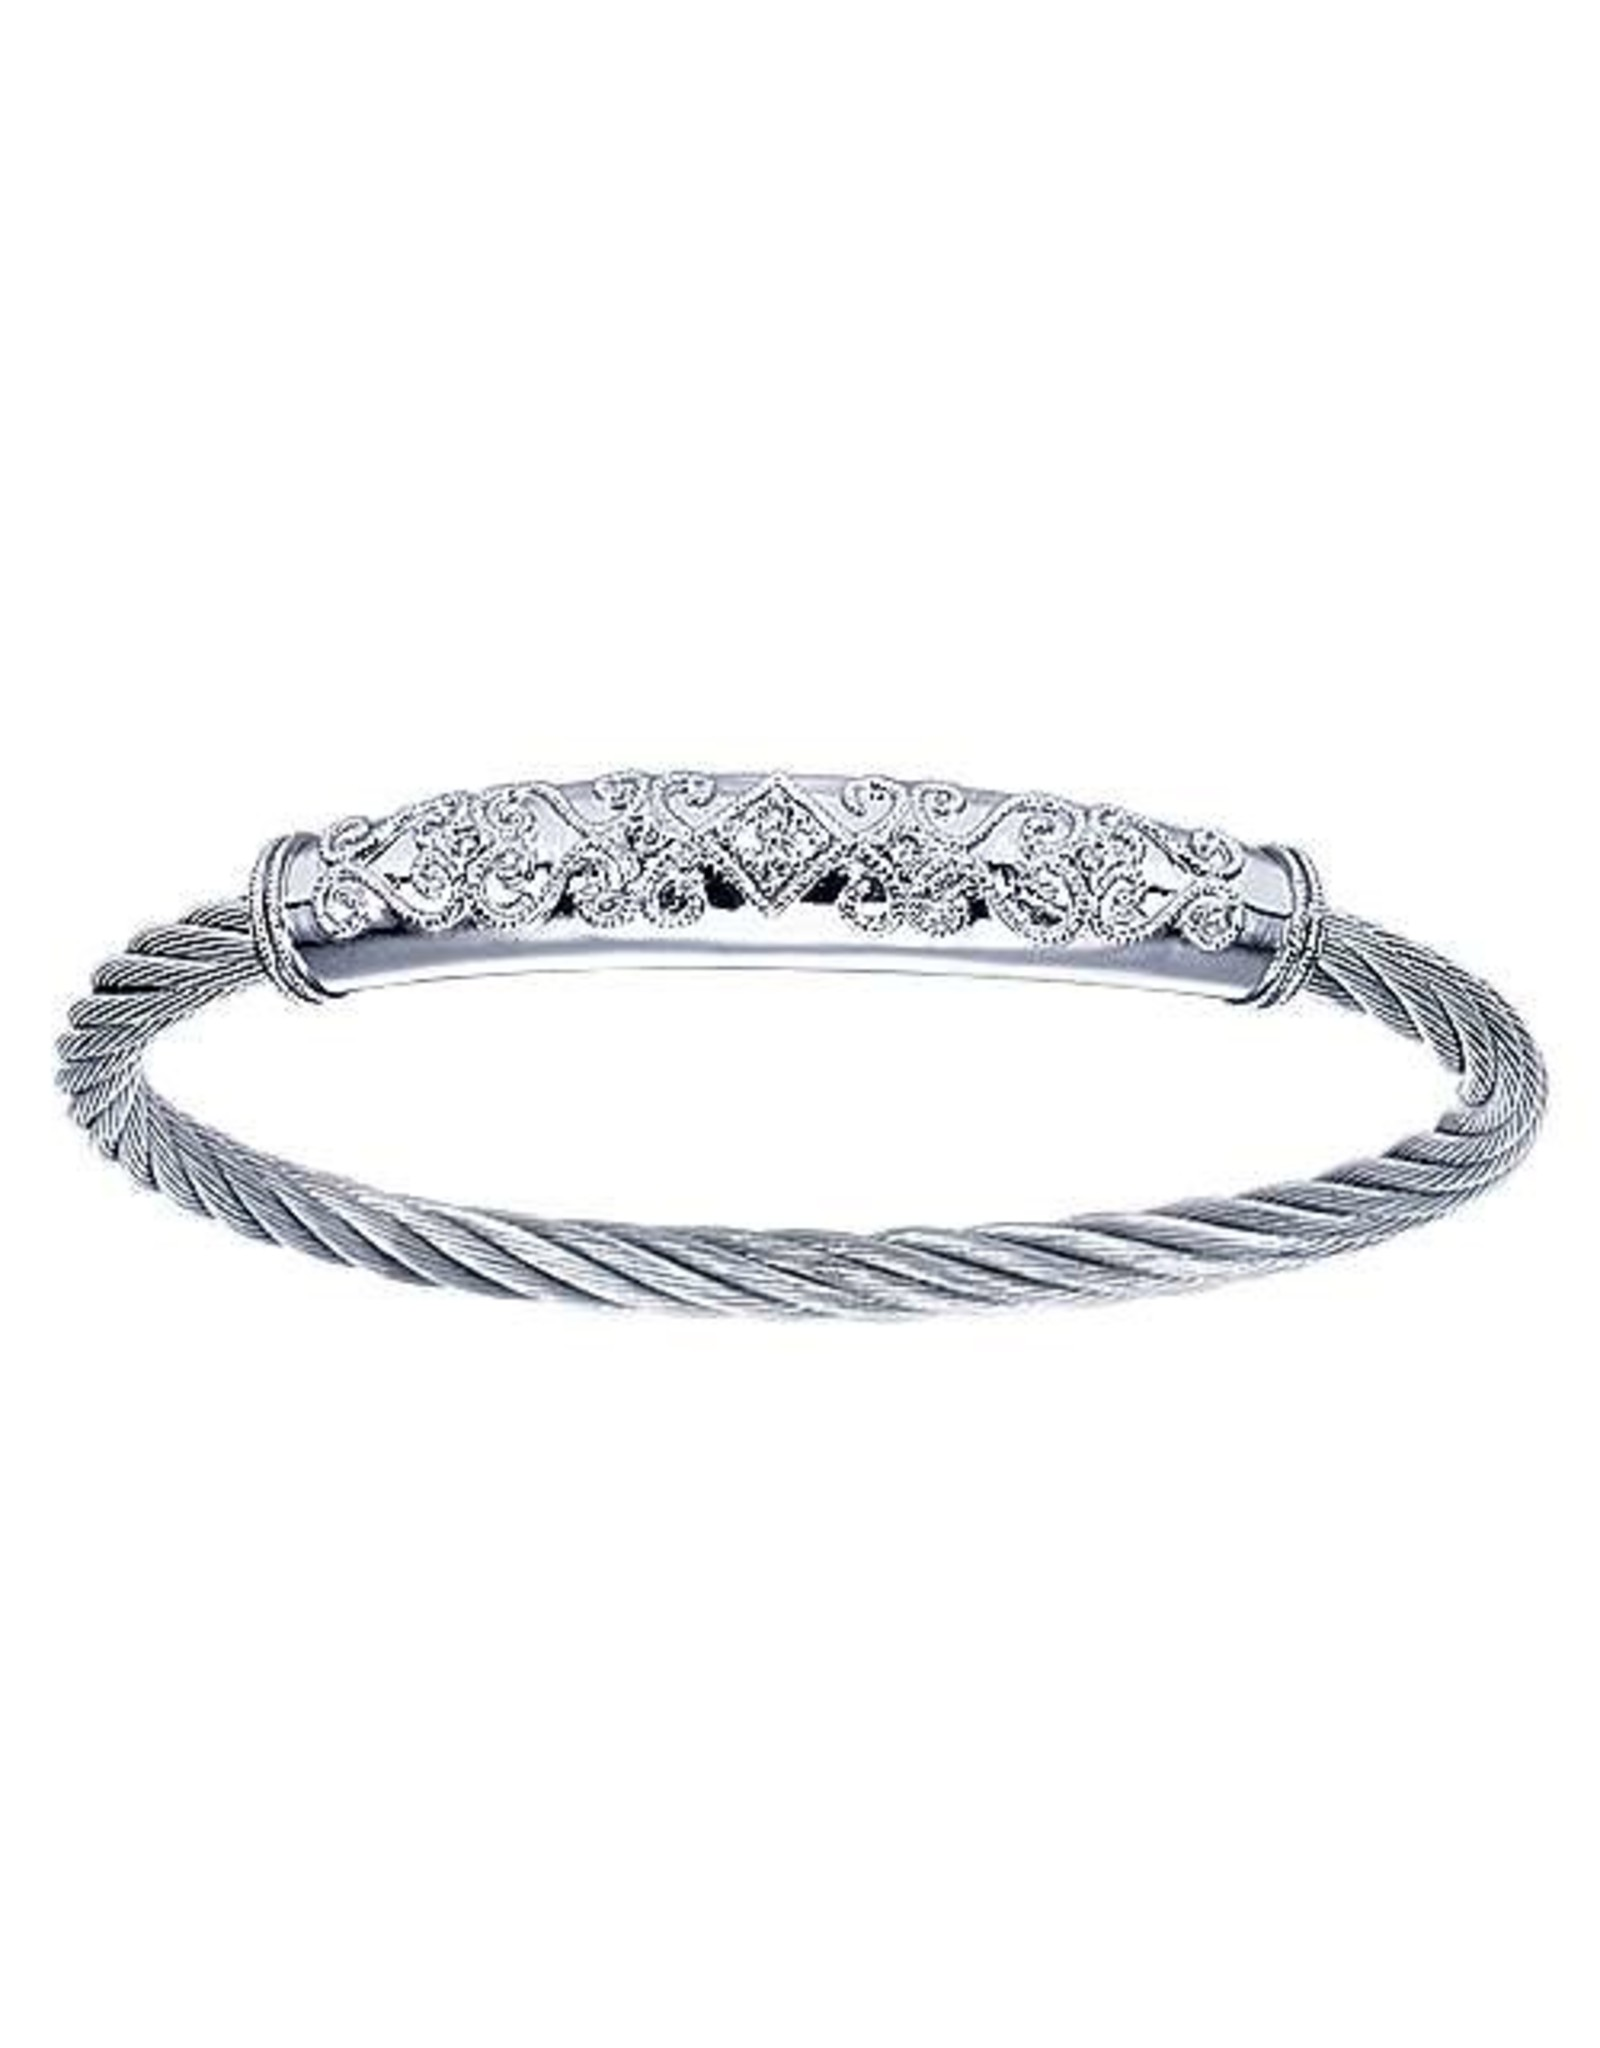 Intricate 925 & Stainless Steel Bangle Bracelet, D: 0.10ct